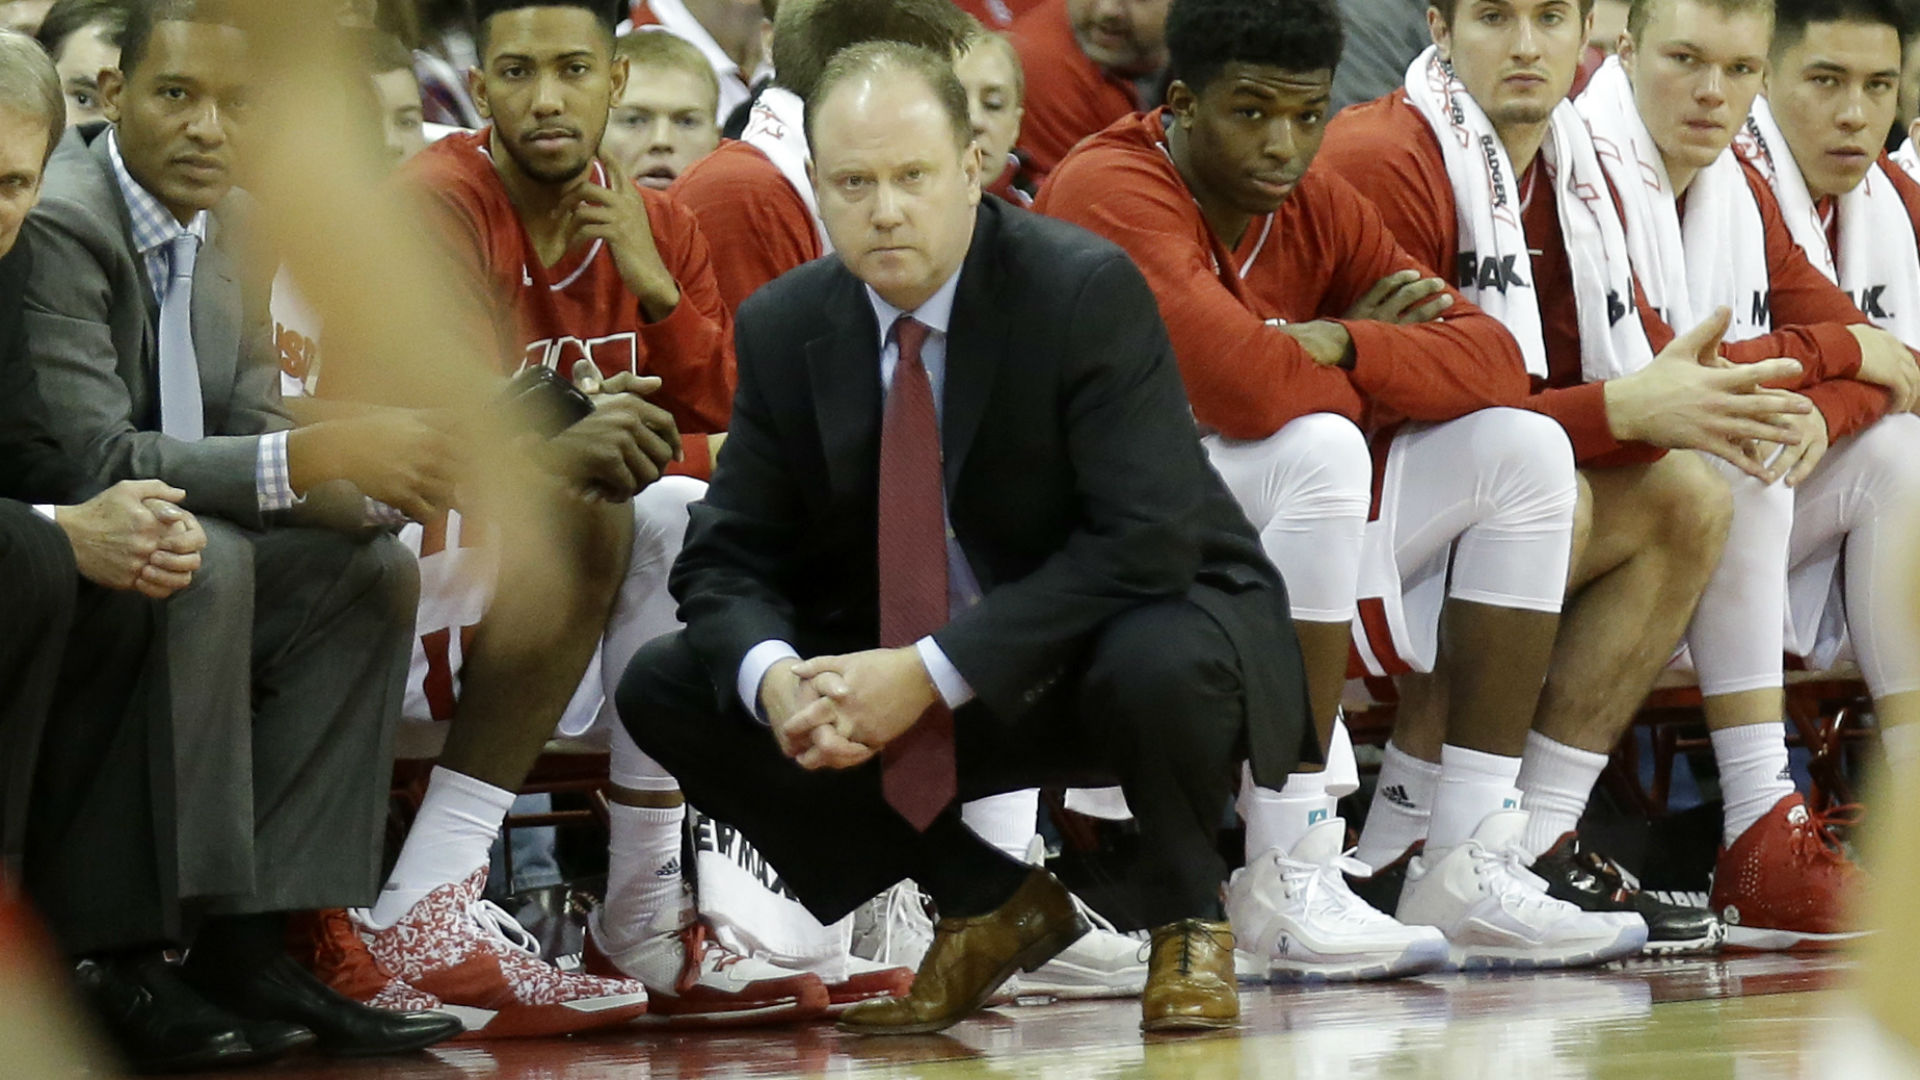 Greg Gard-021416-Getty-FTR.jpg